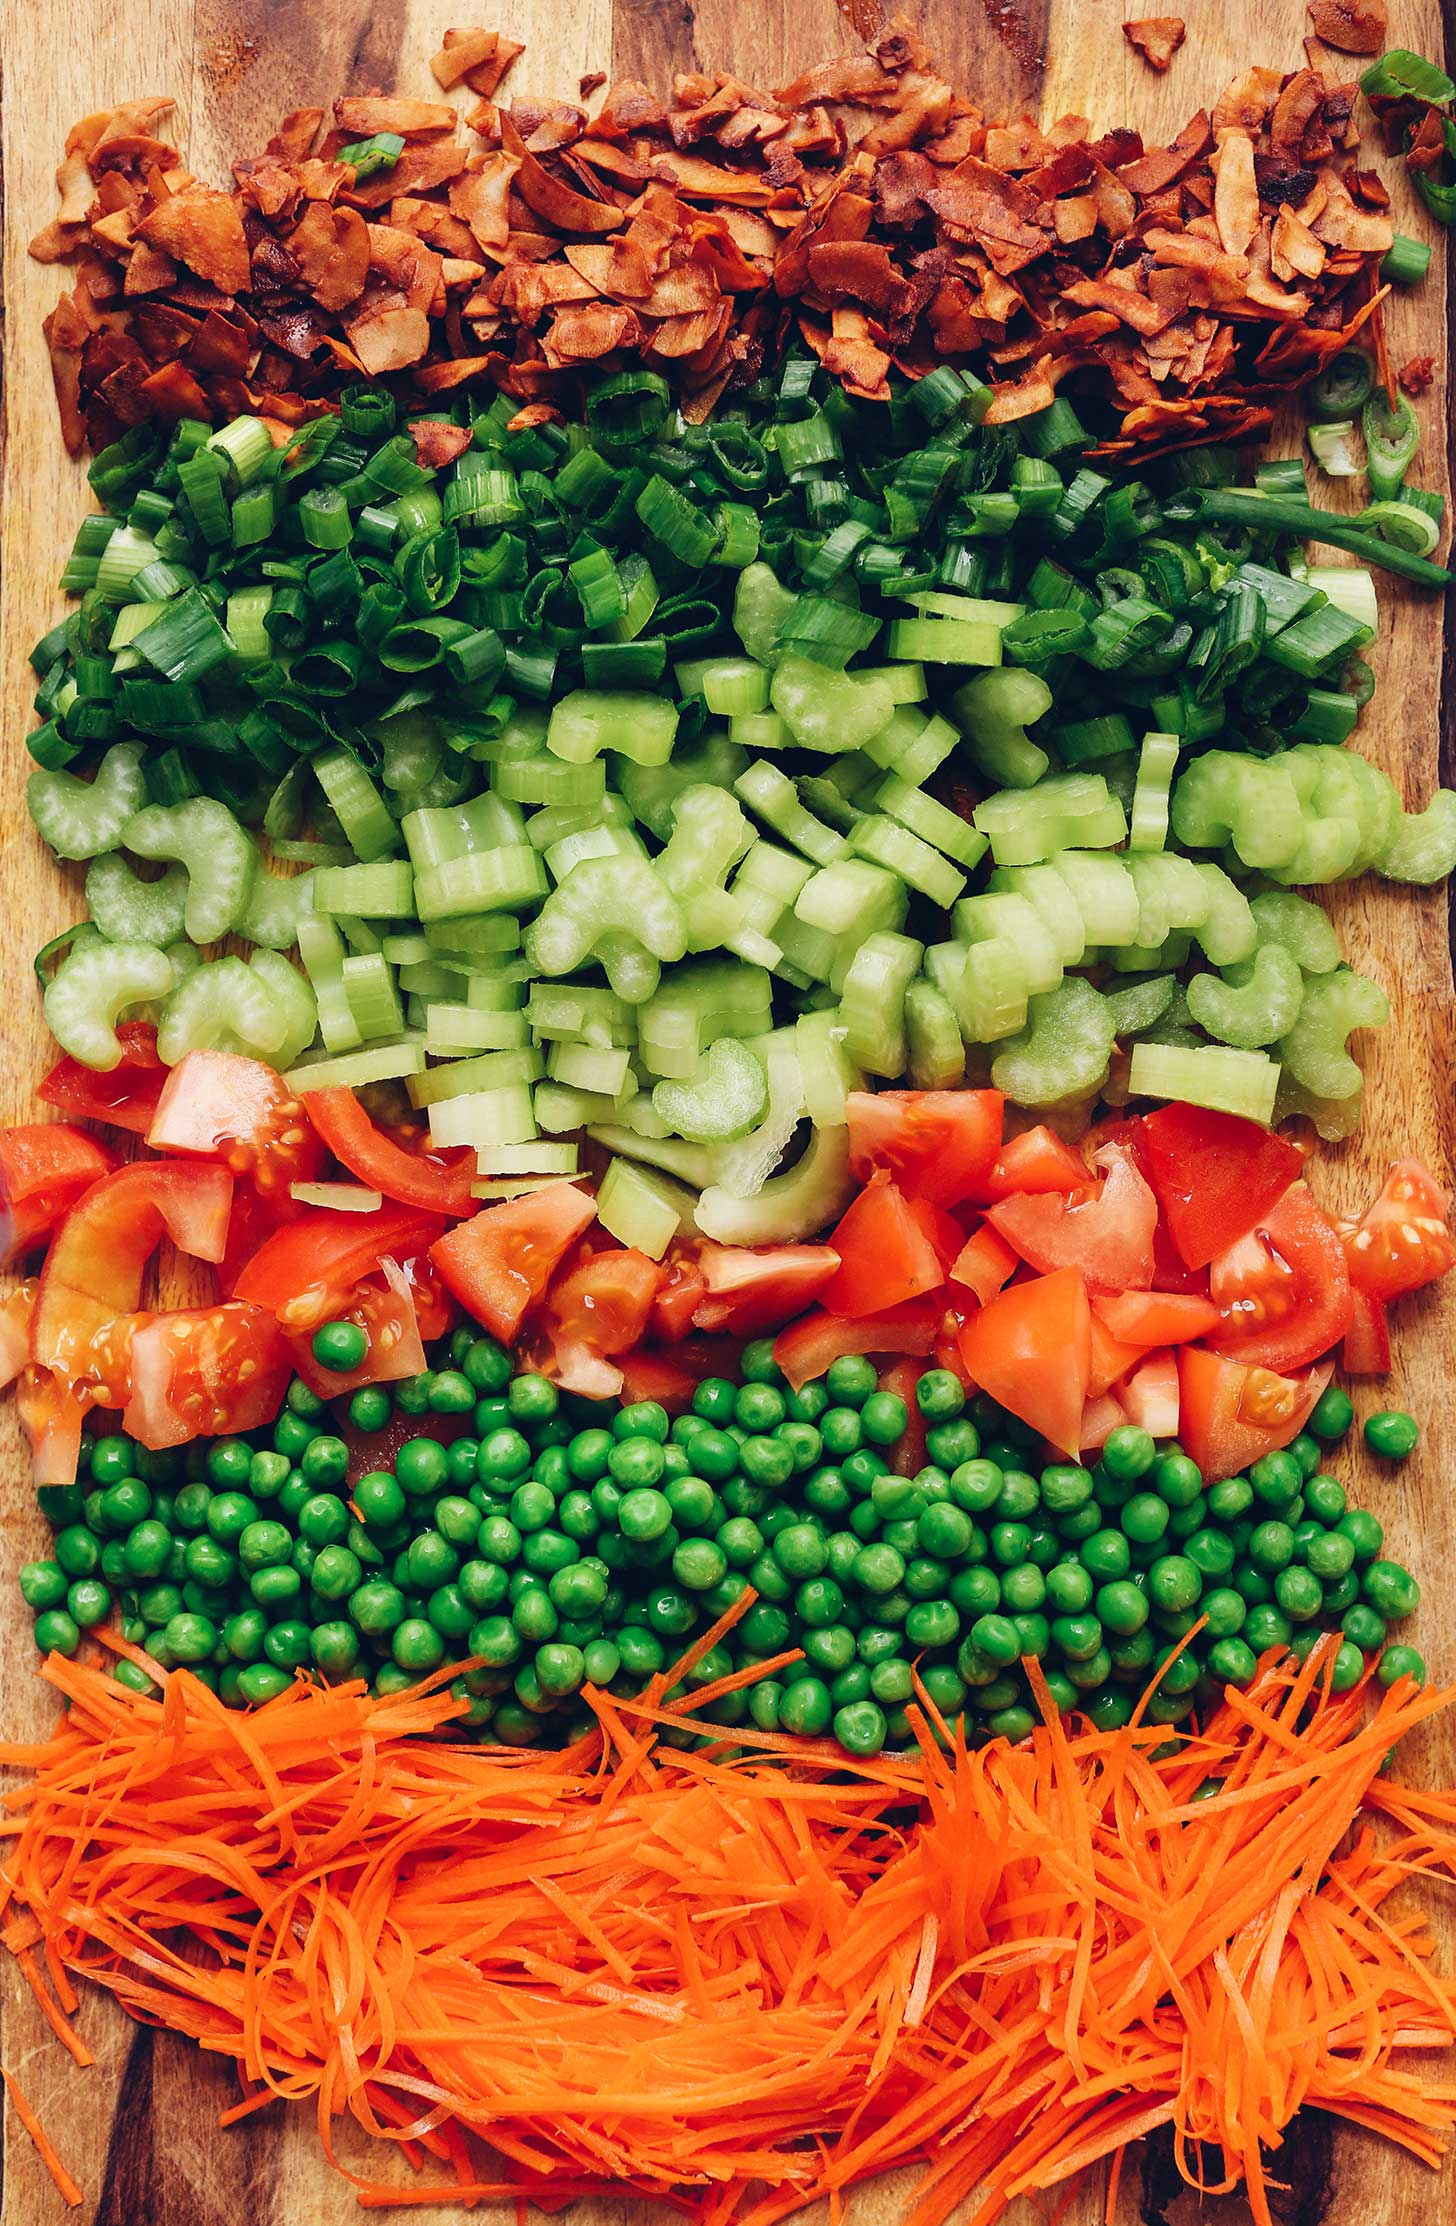 Shredded carrots, green peas, tomatoes, celery, green onion, and coconut bacon on a wood cutting board to be made into Vegan 7-Layer Salad